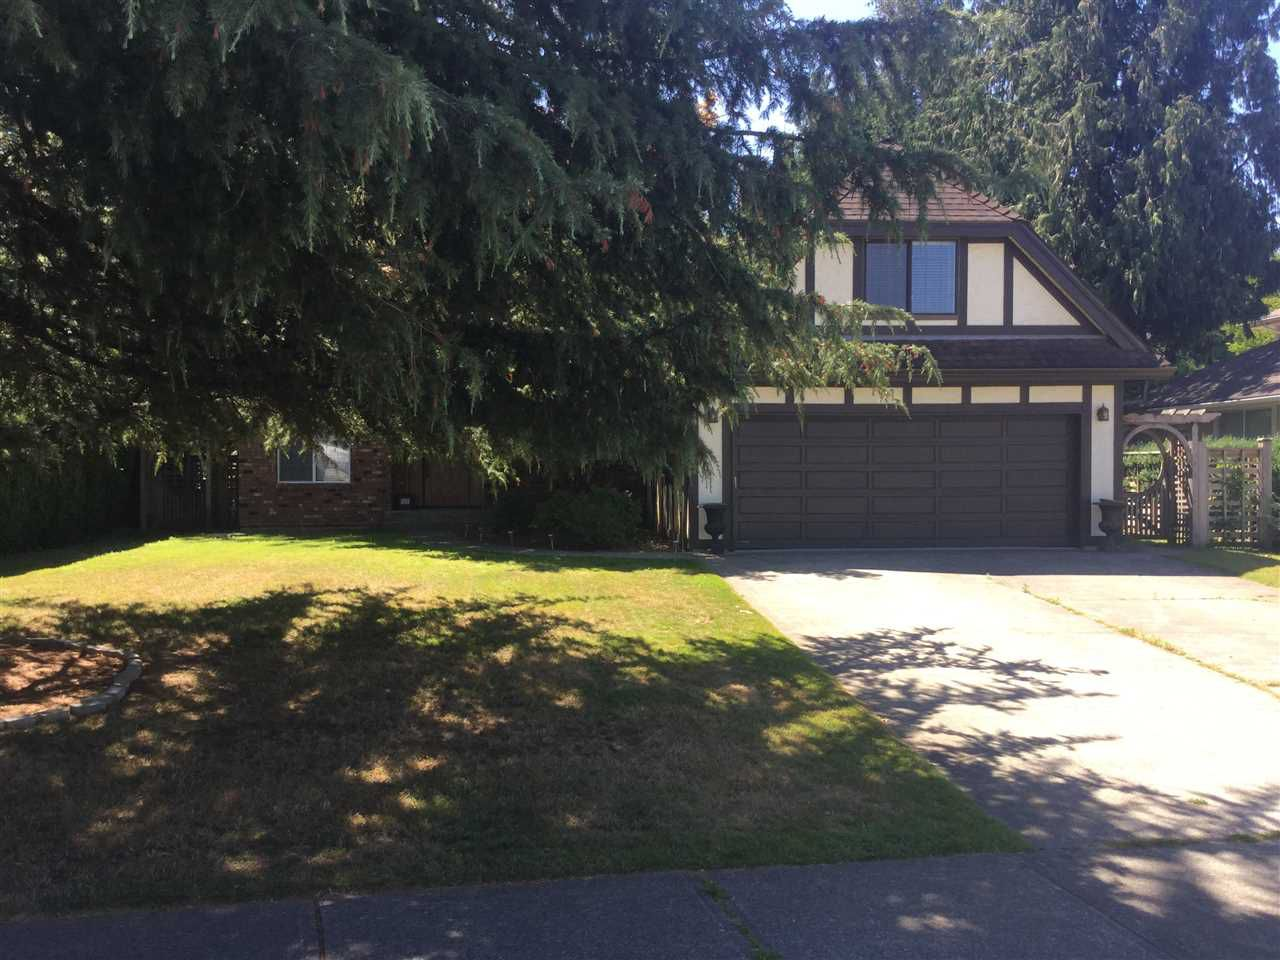 Main Photo: 34942 EVERETT Drive in Abbotsford: Abbotsford East House for sale : MLS®# R2290811